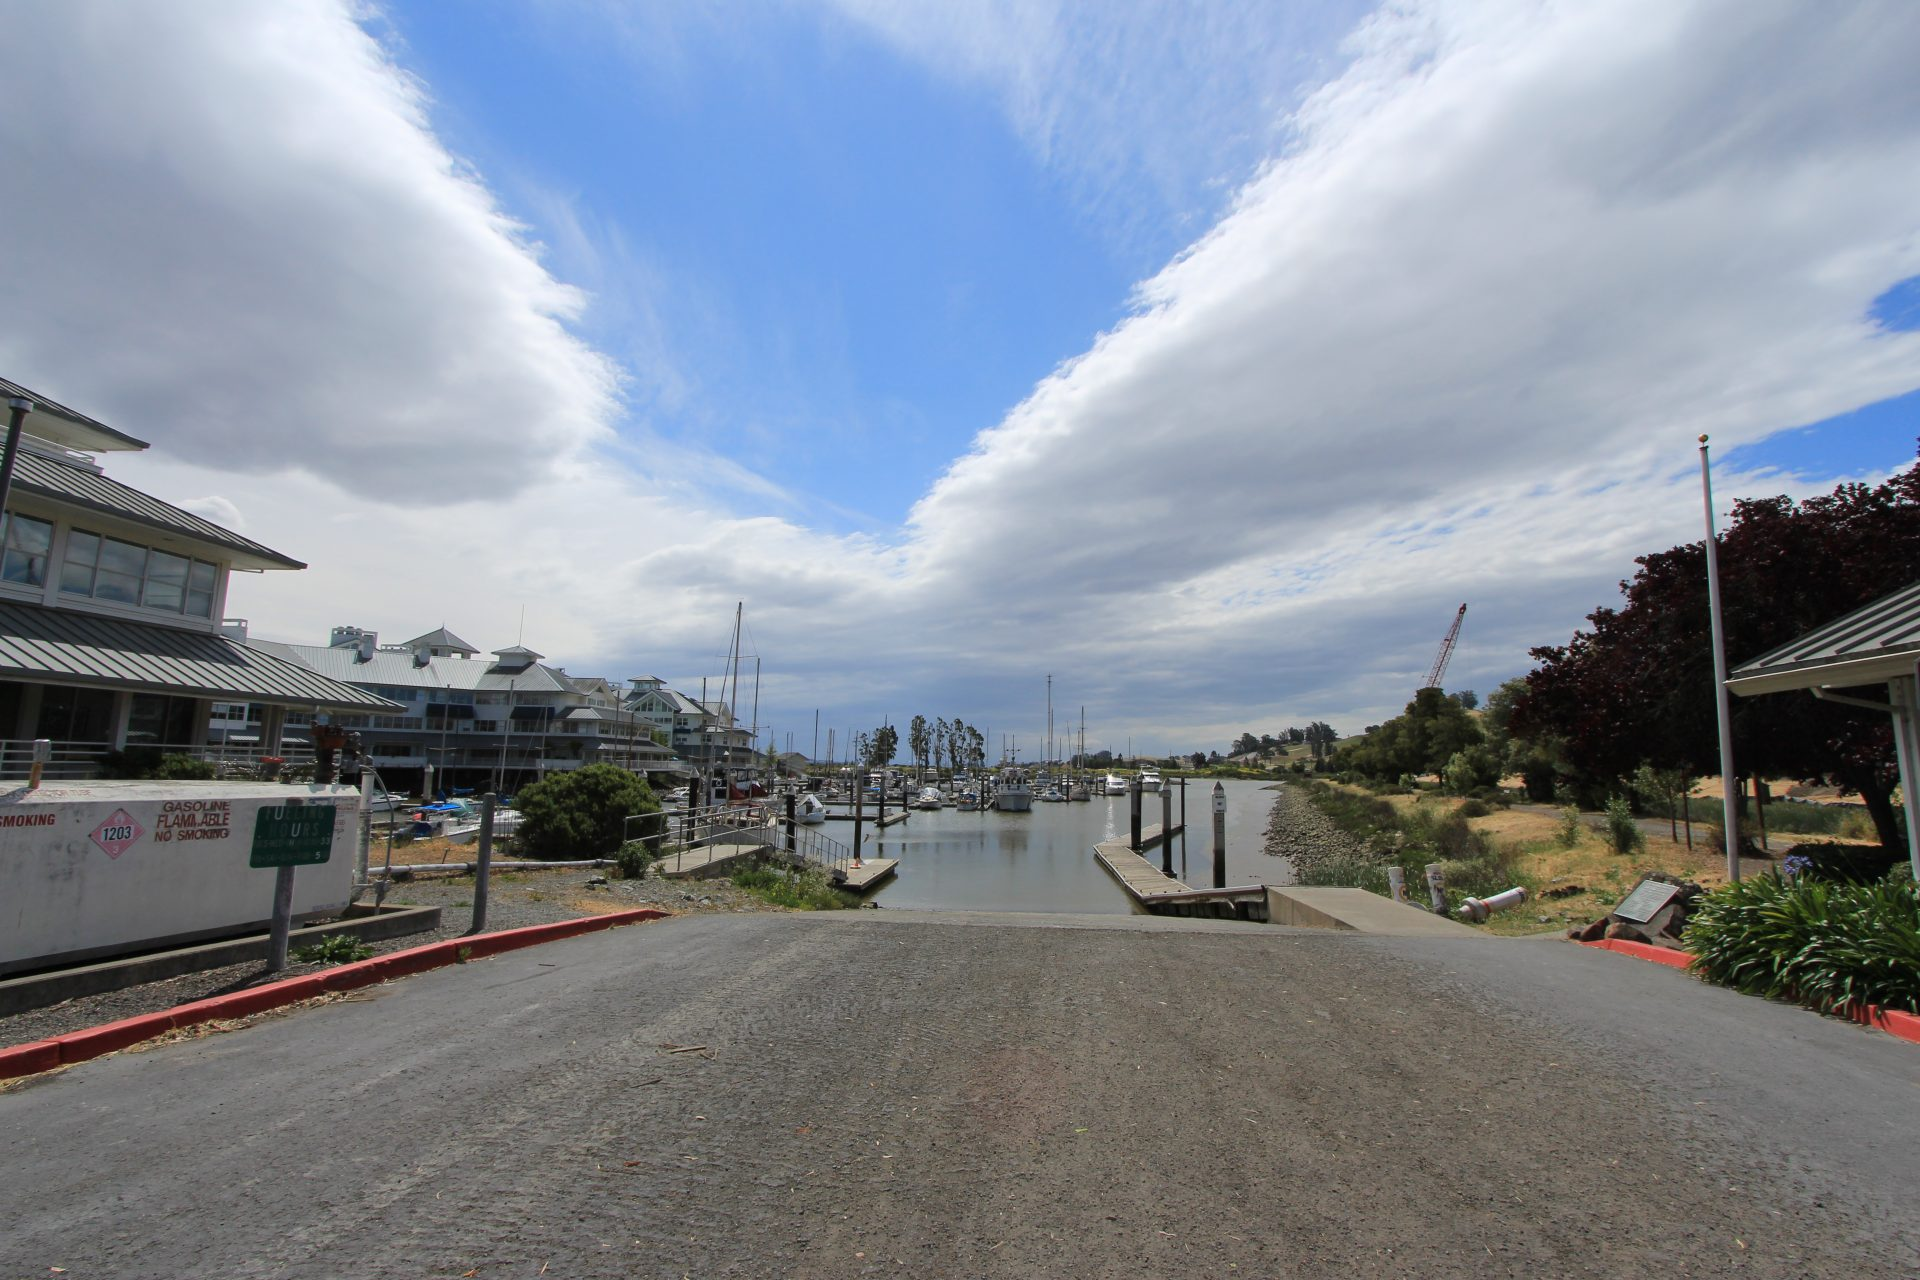 View from parking area next to boat ramp